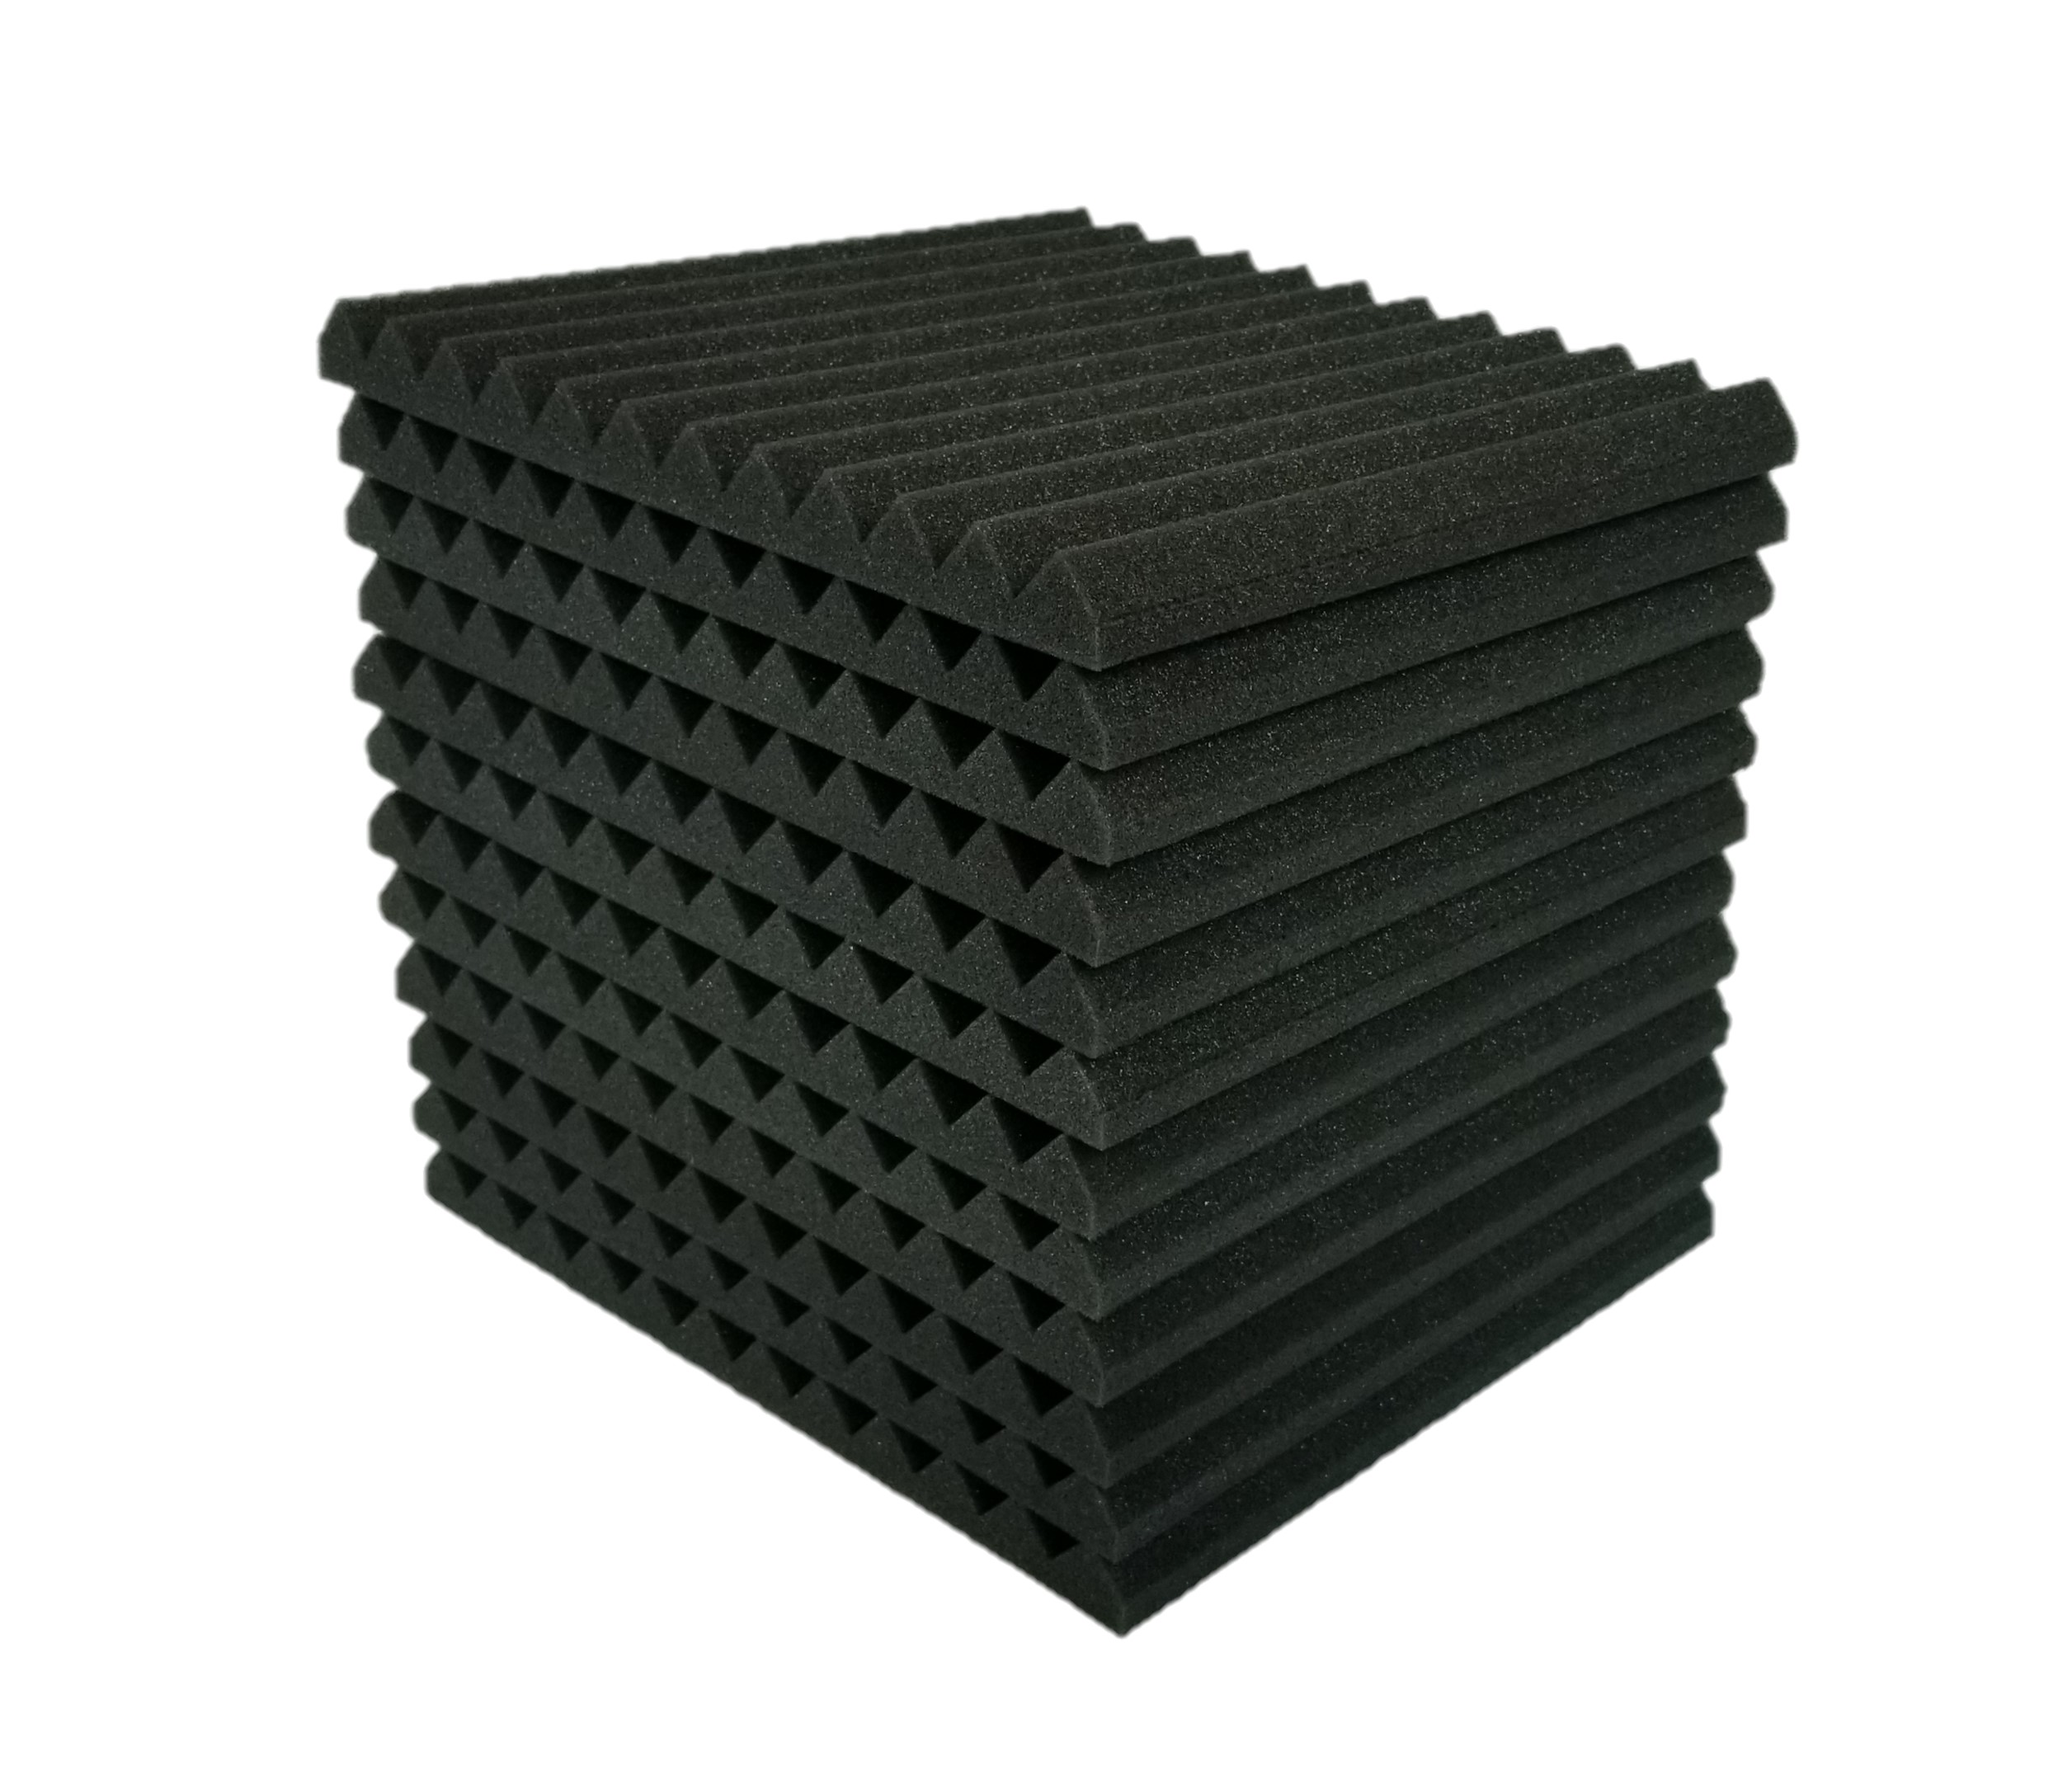 12Pack, Black/&Red Ideal for Home /& Studio Sound Insulation Top Quality 12 Pack Black/&Red Acoustic Foam Panels 2 X 12 X 12 Soundproofing Studio Foam Wedge Tiles Fireproof